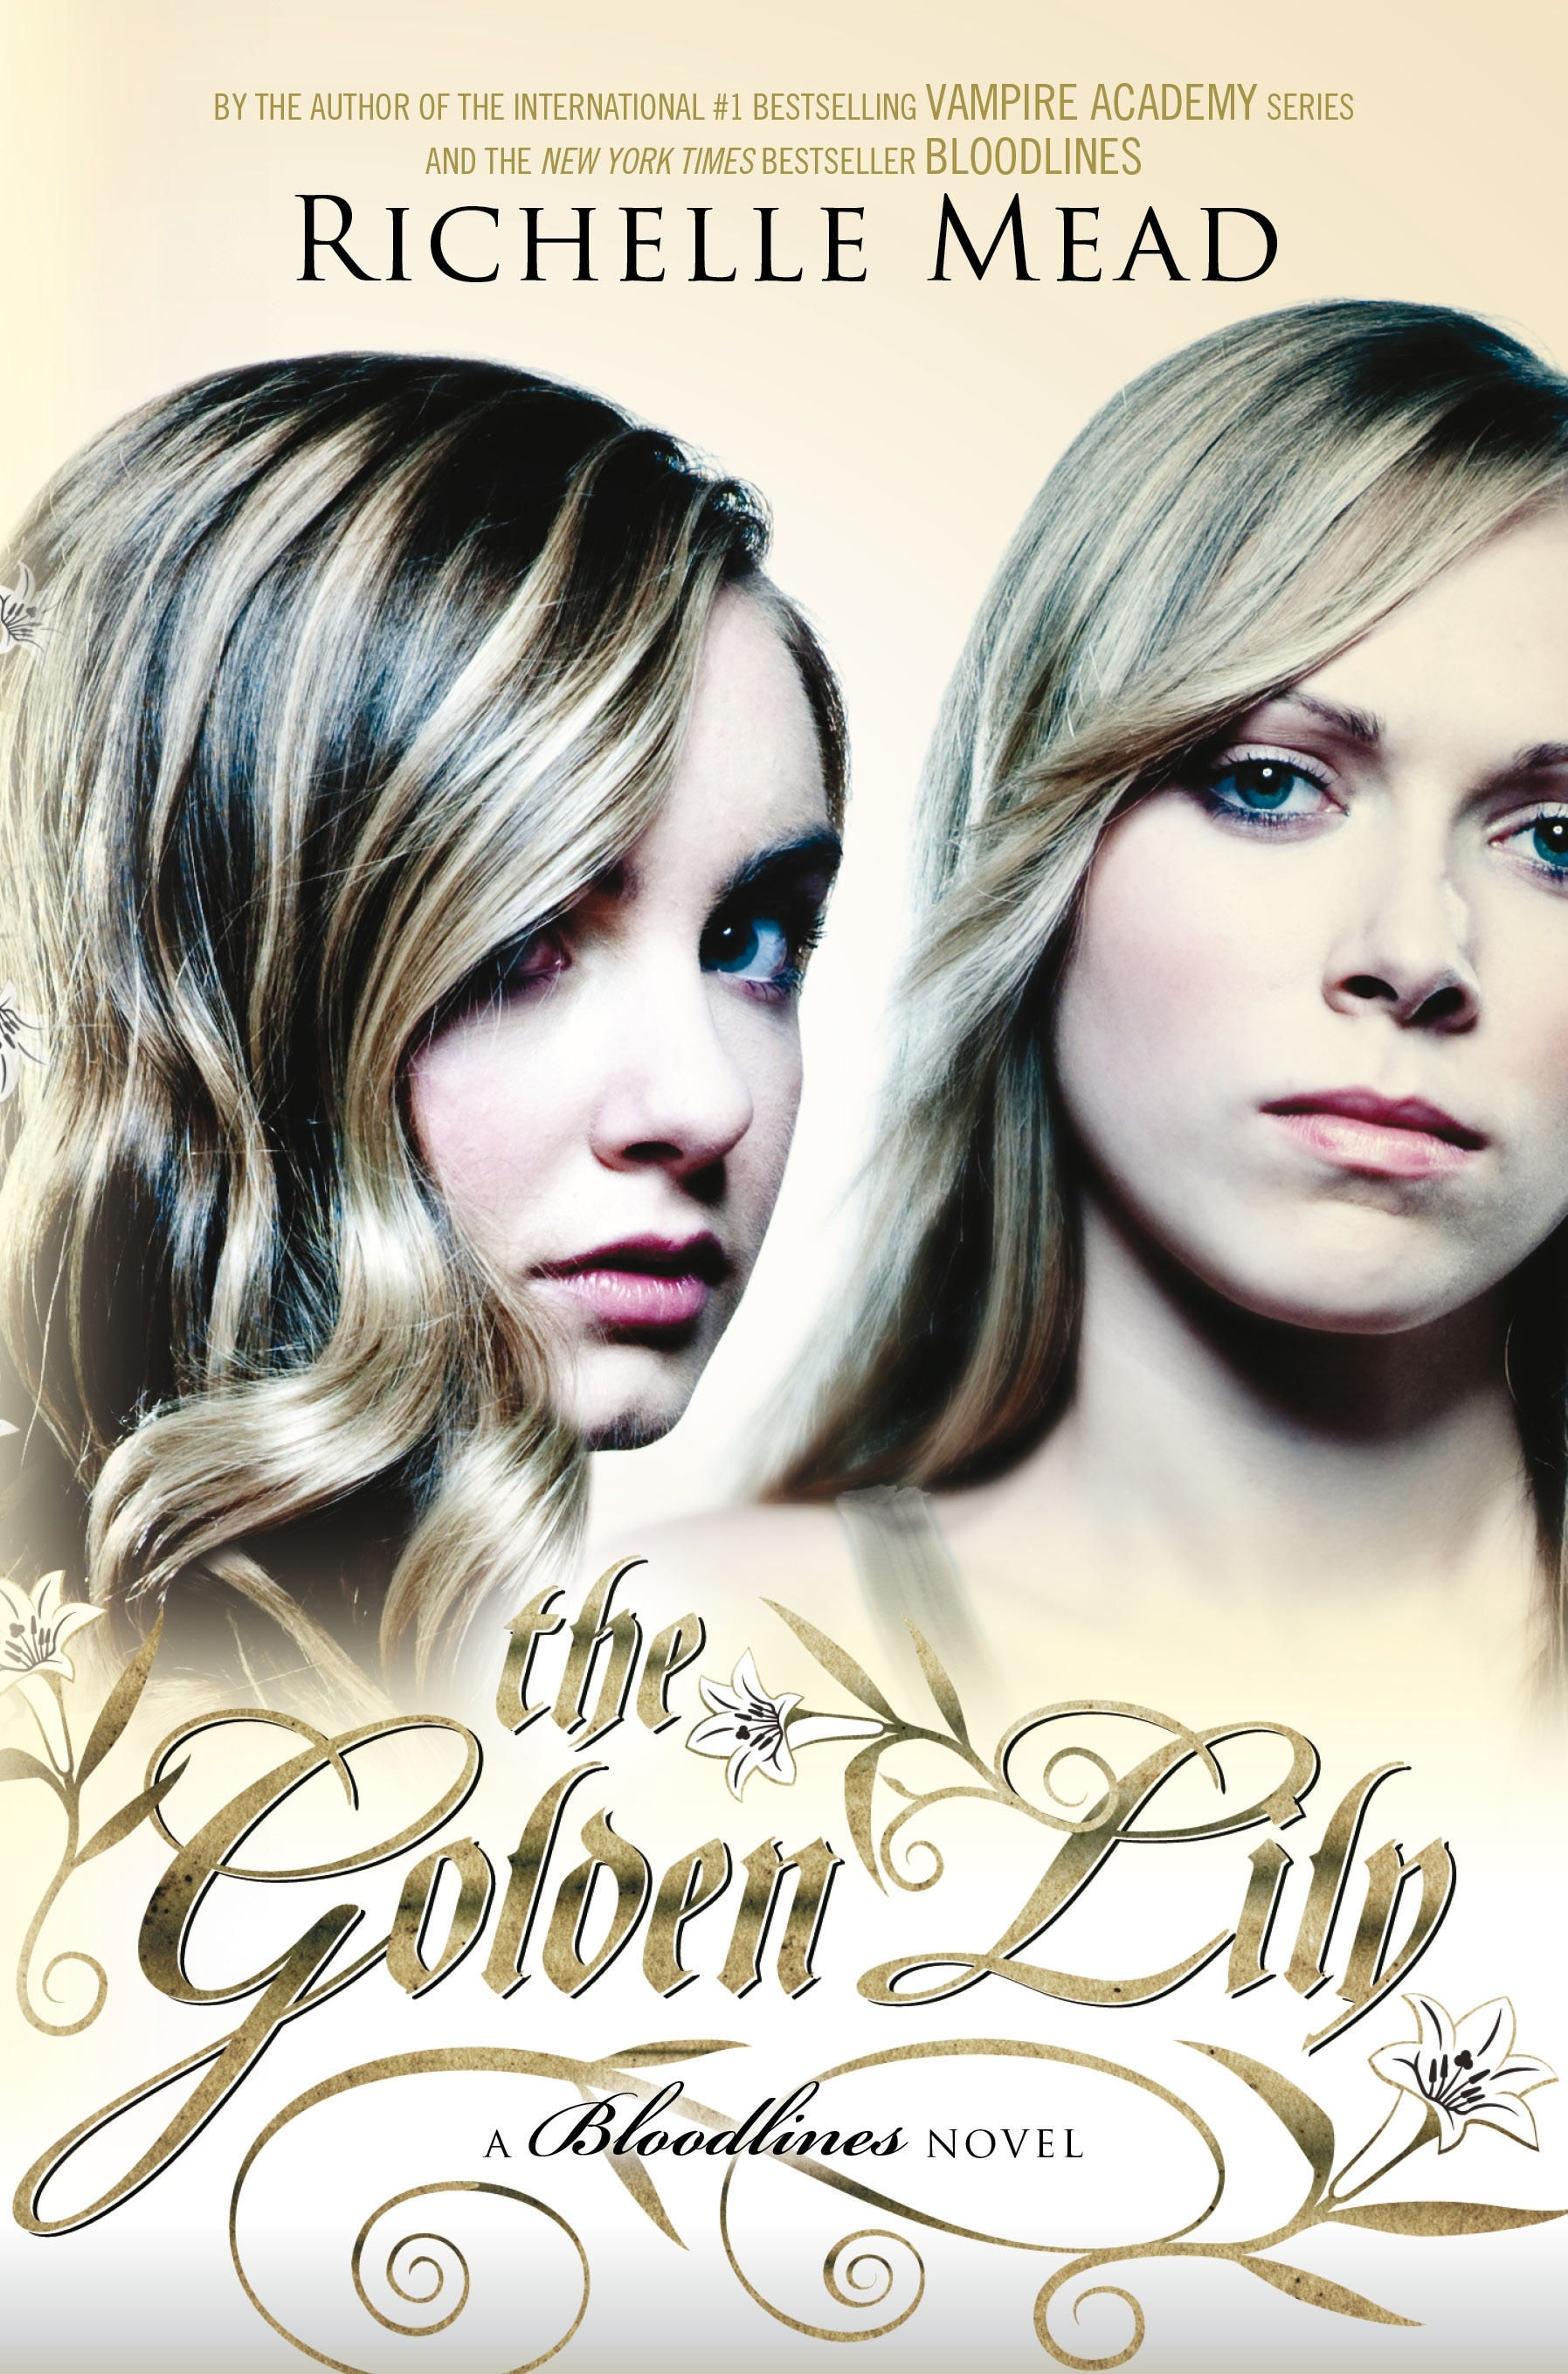 Golden Lily by Richelle Mead